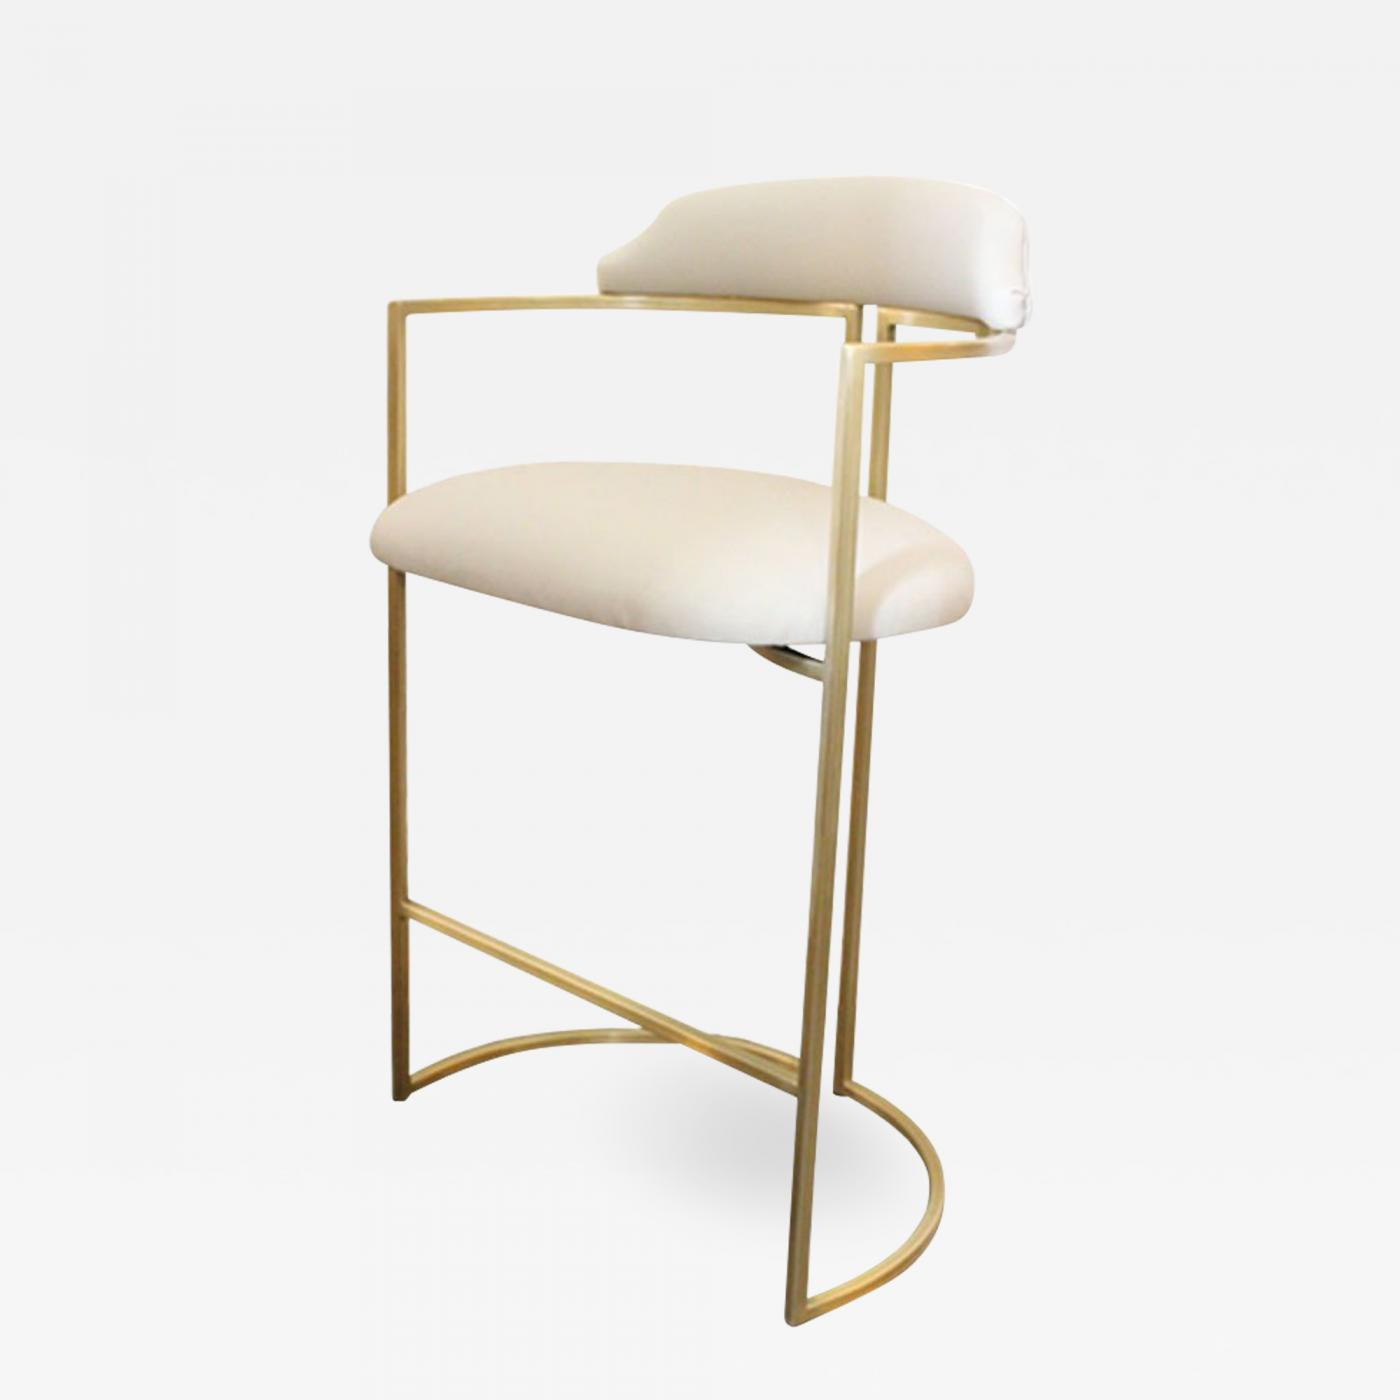 Superb Again Again Custom Brass Bar Stools Upholstered In White Leather Theyellowbook Wood Chair Design Ideas Theyellowbookinfo